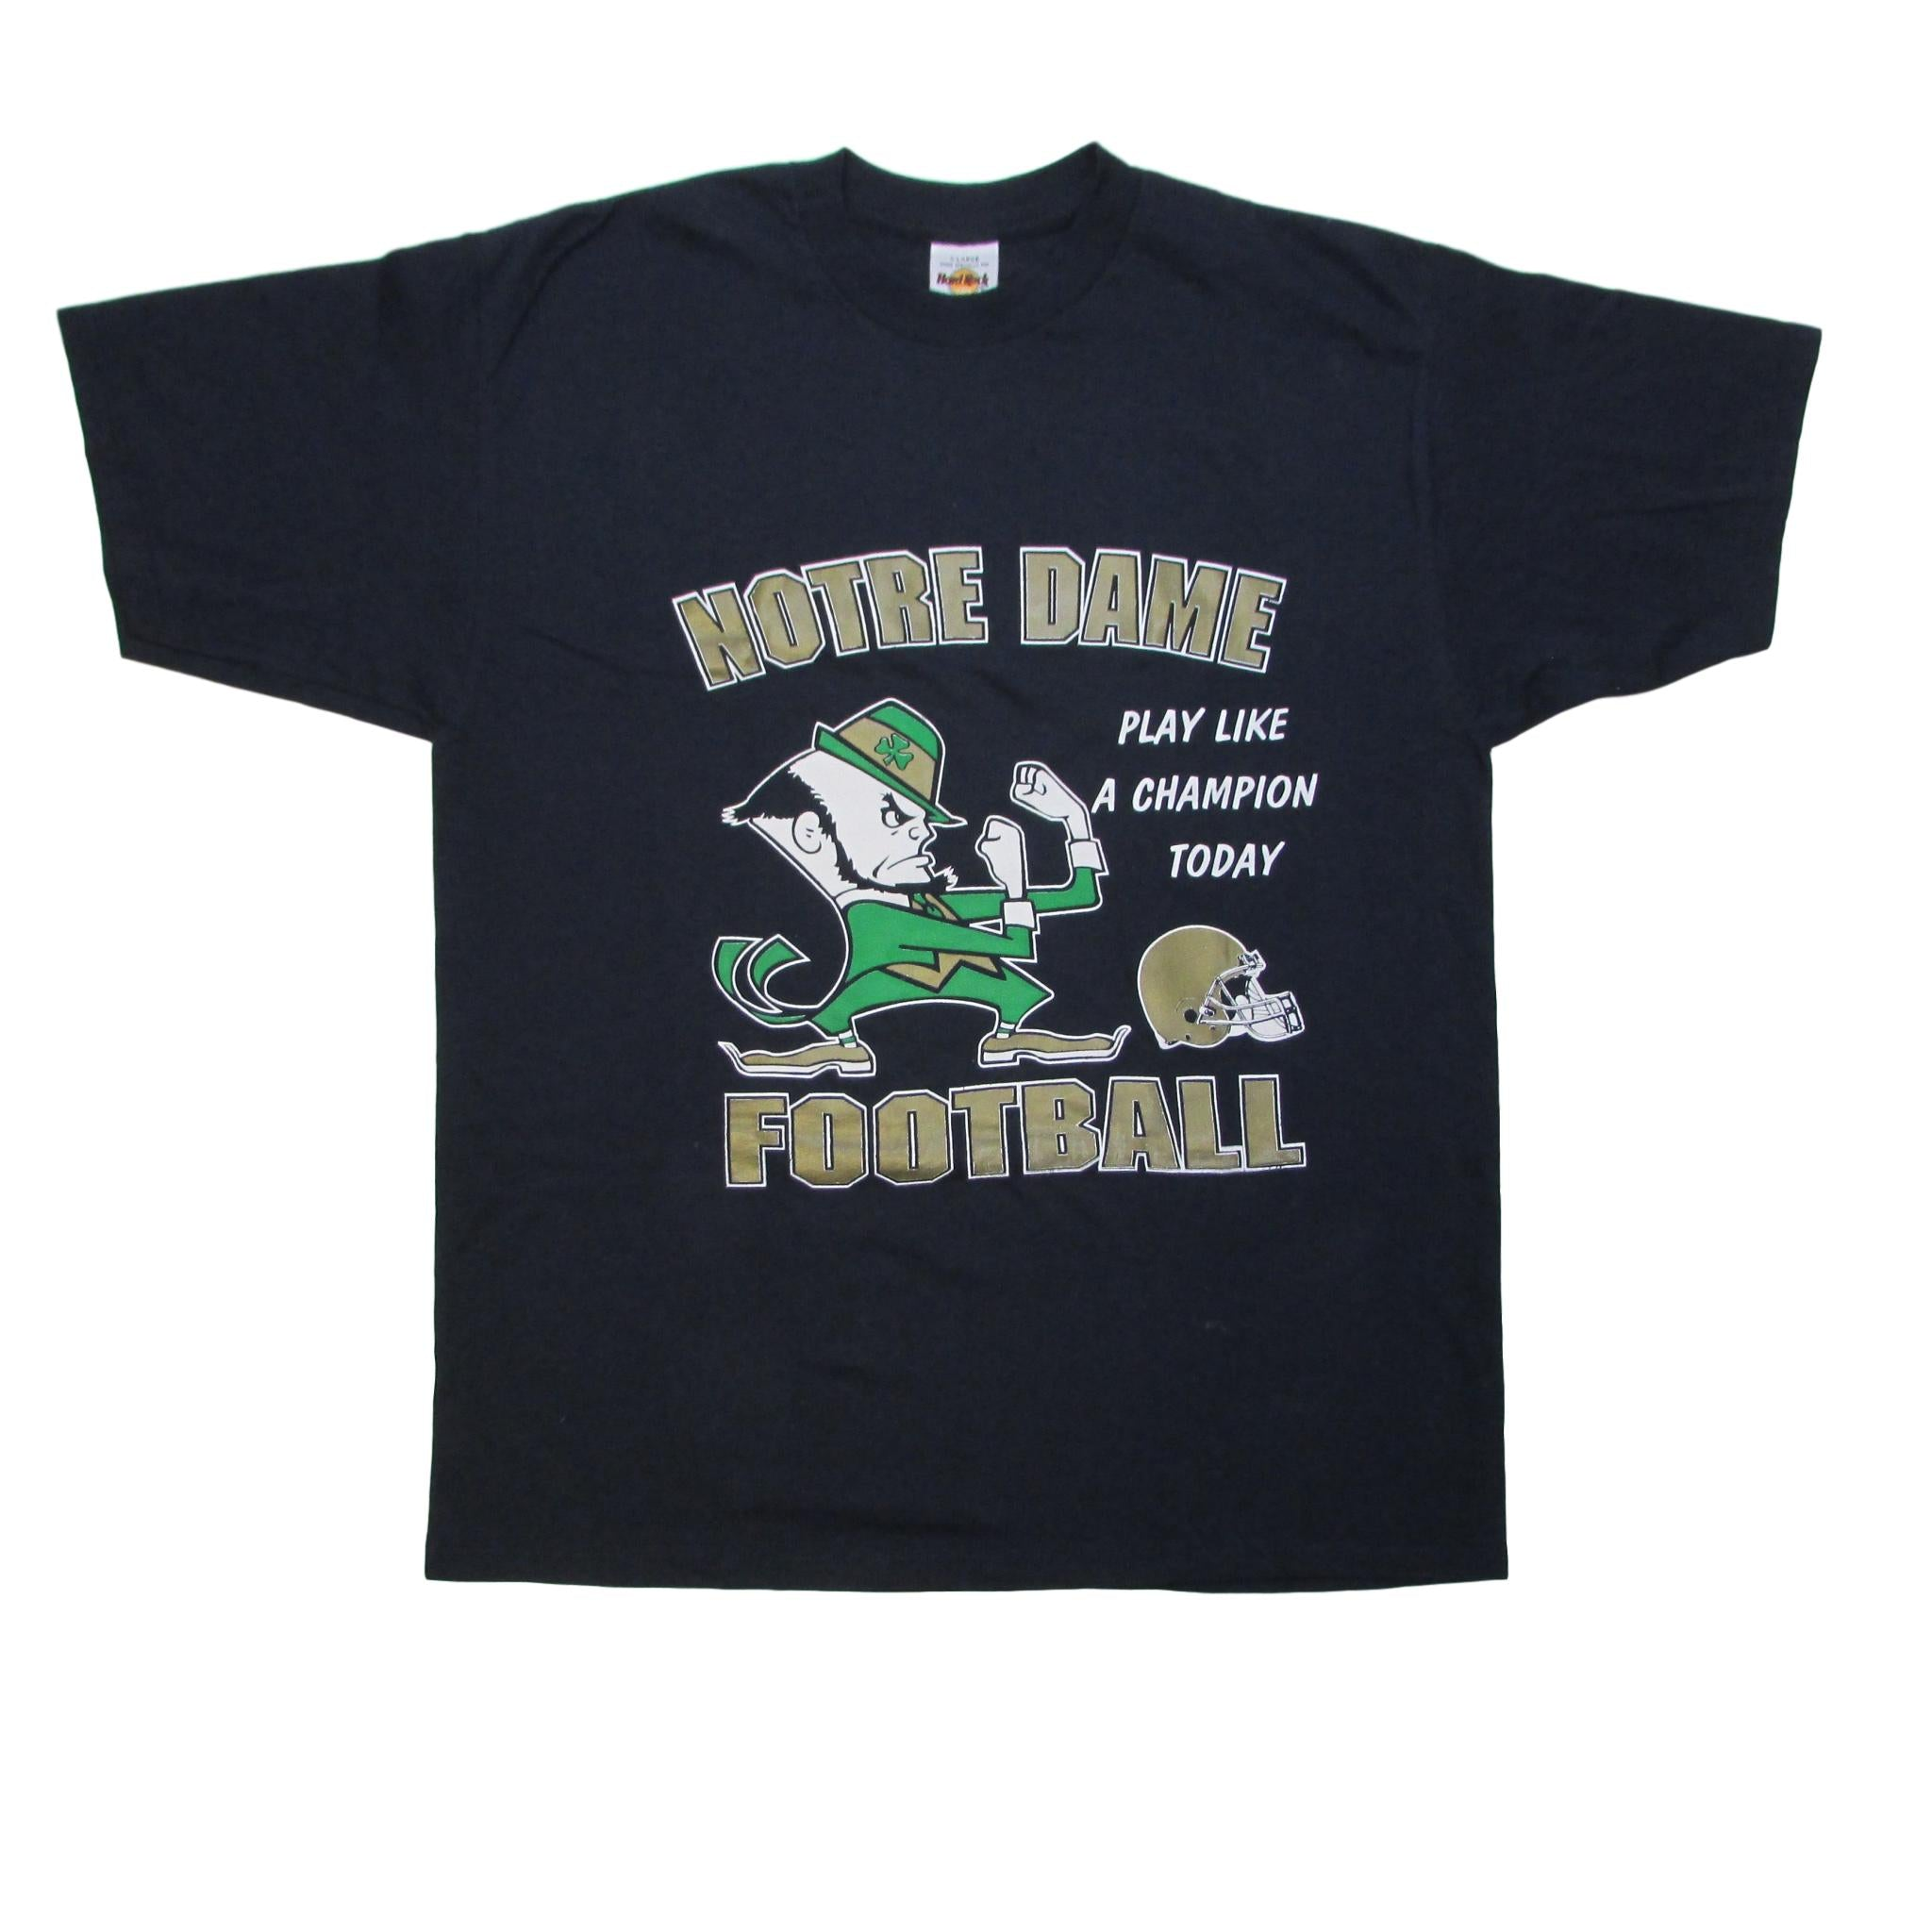 Norte Dame Fighting Irish Football T-Shirt Fight Like A Champ Sz XL